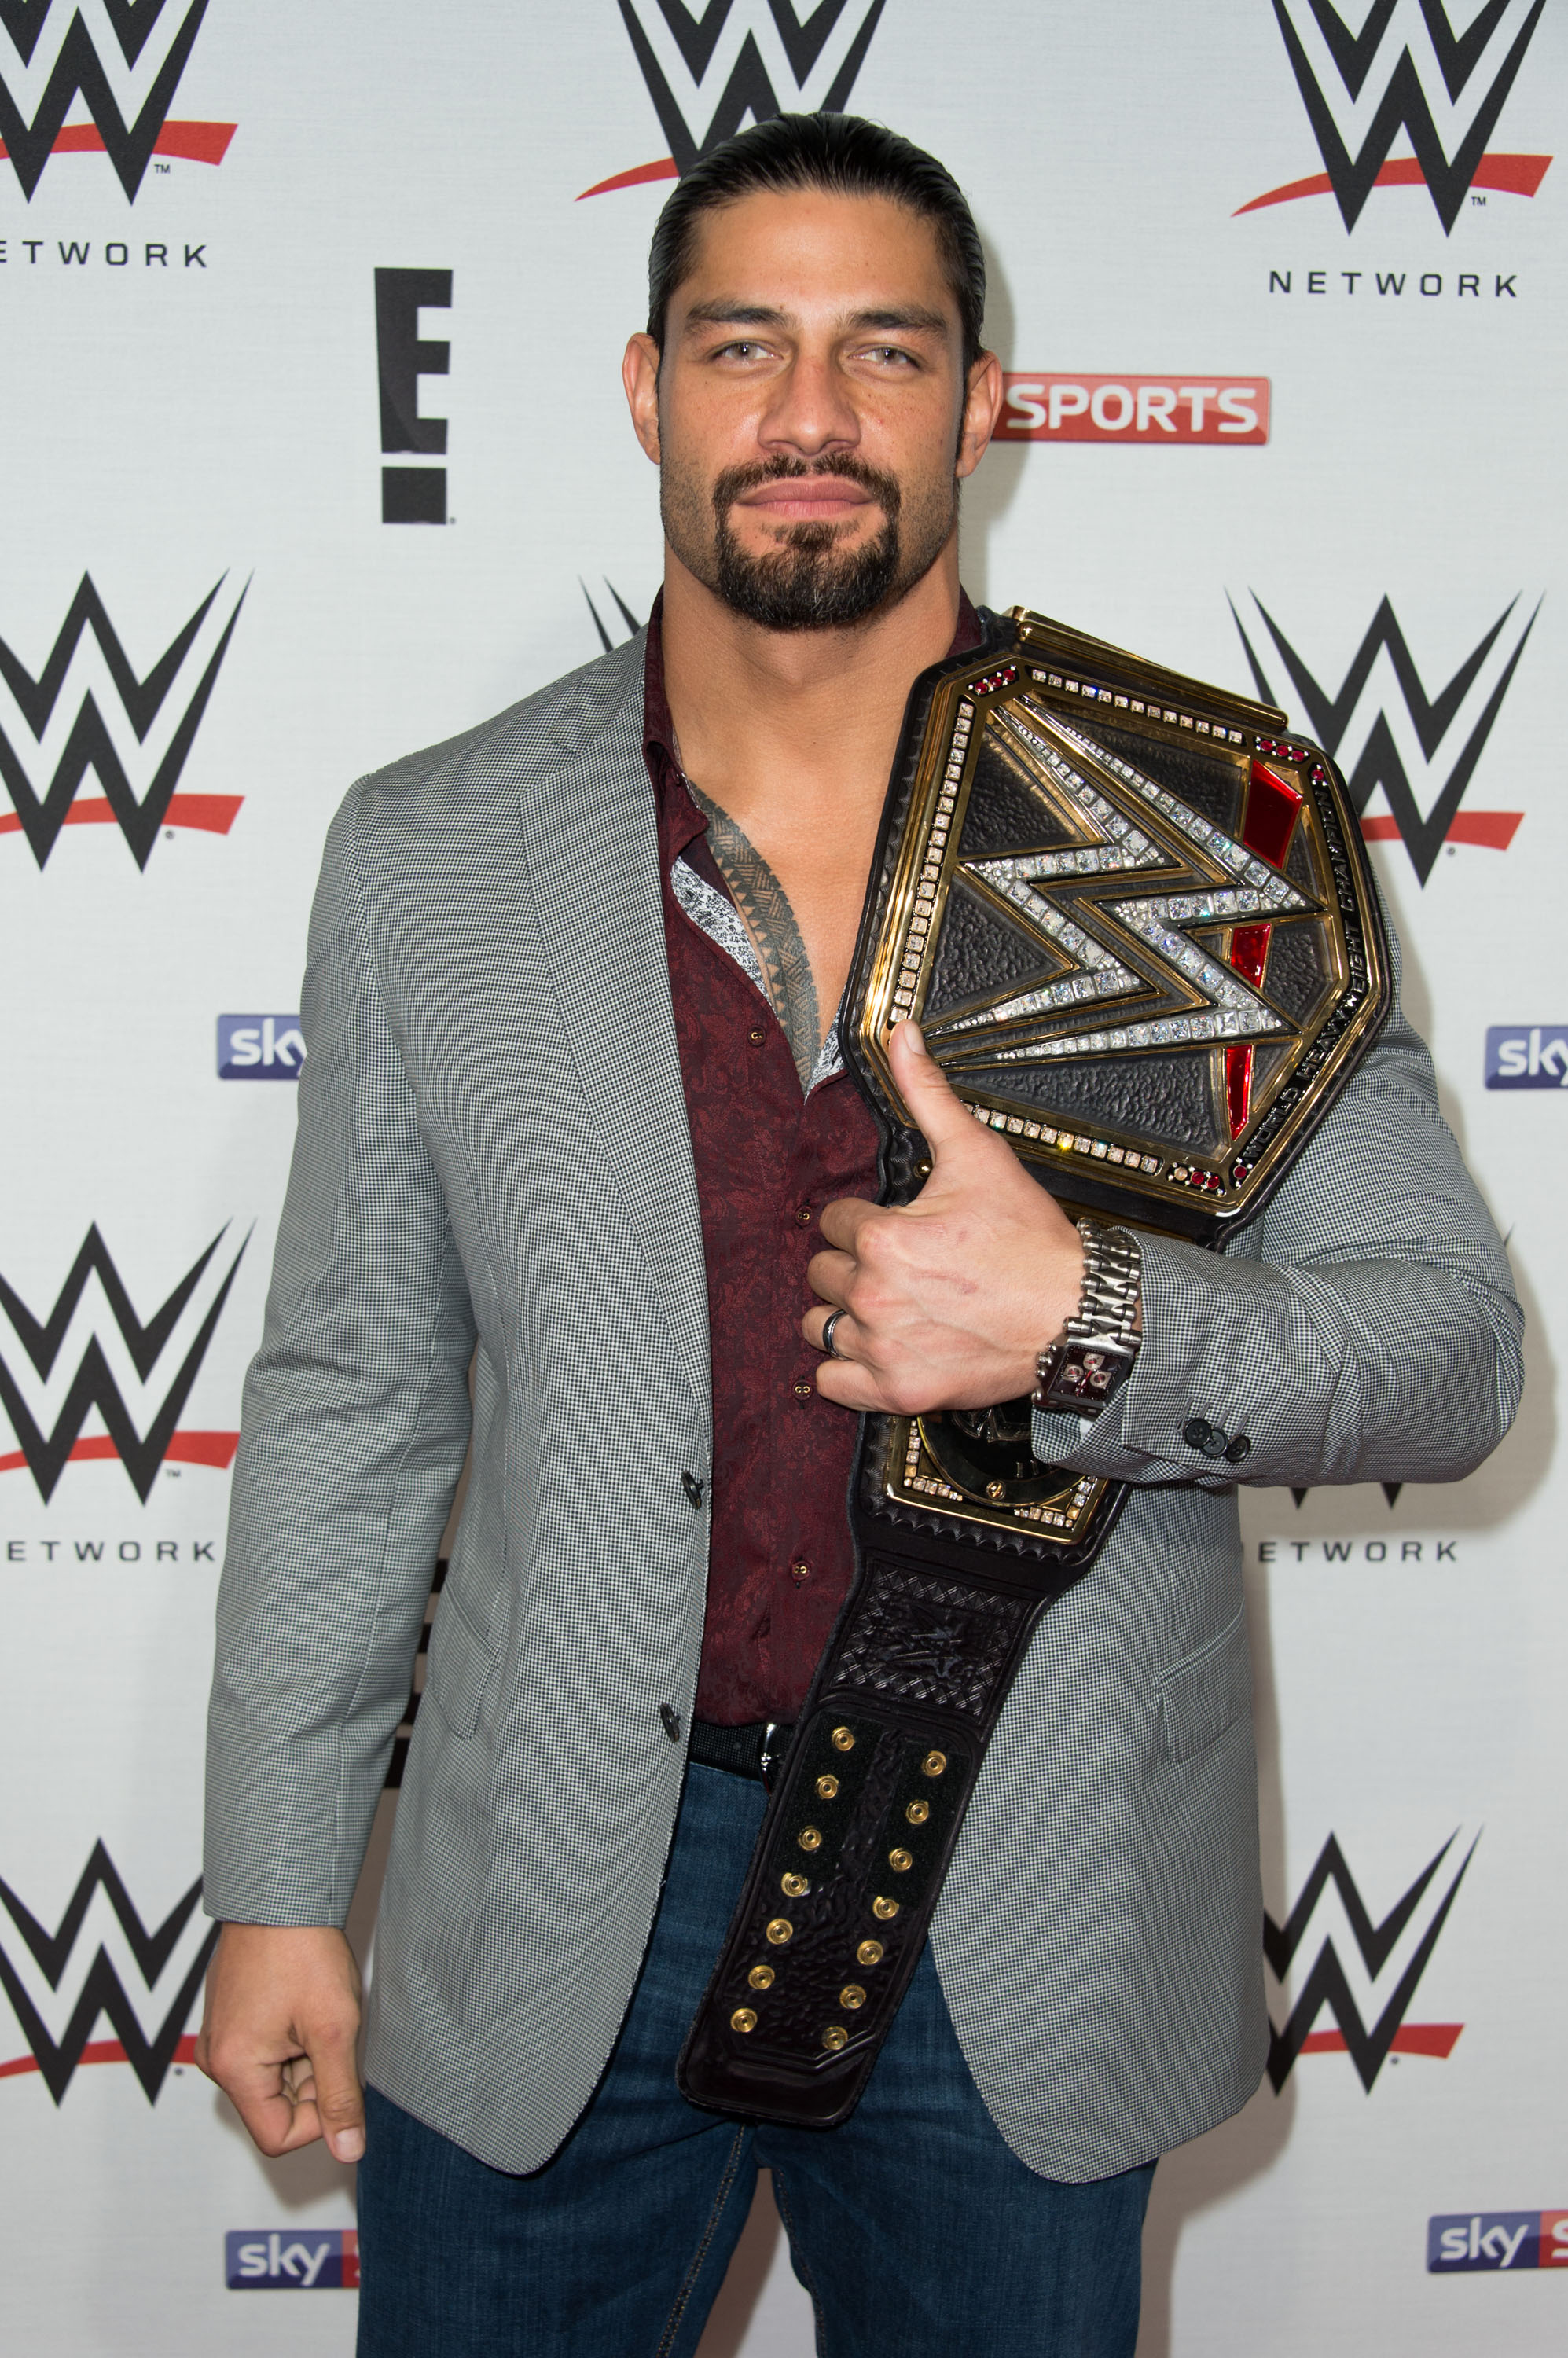 Big Update: Roman Reigns Likely Underwent Surgery for a Pre-Existing Nose Condition